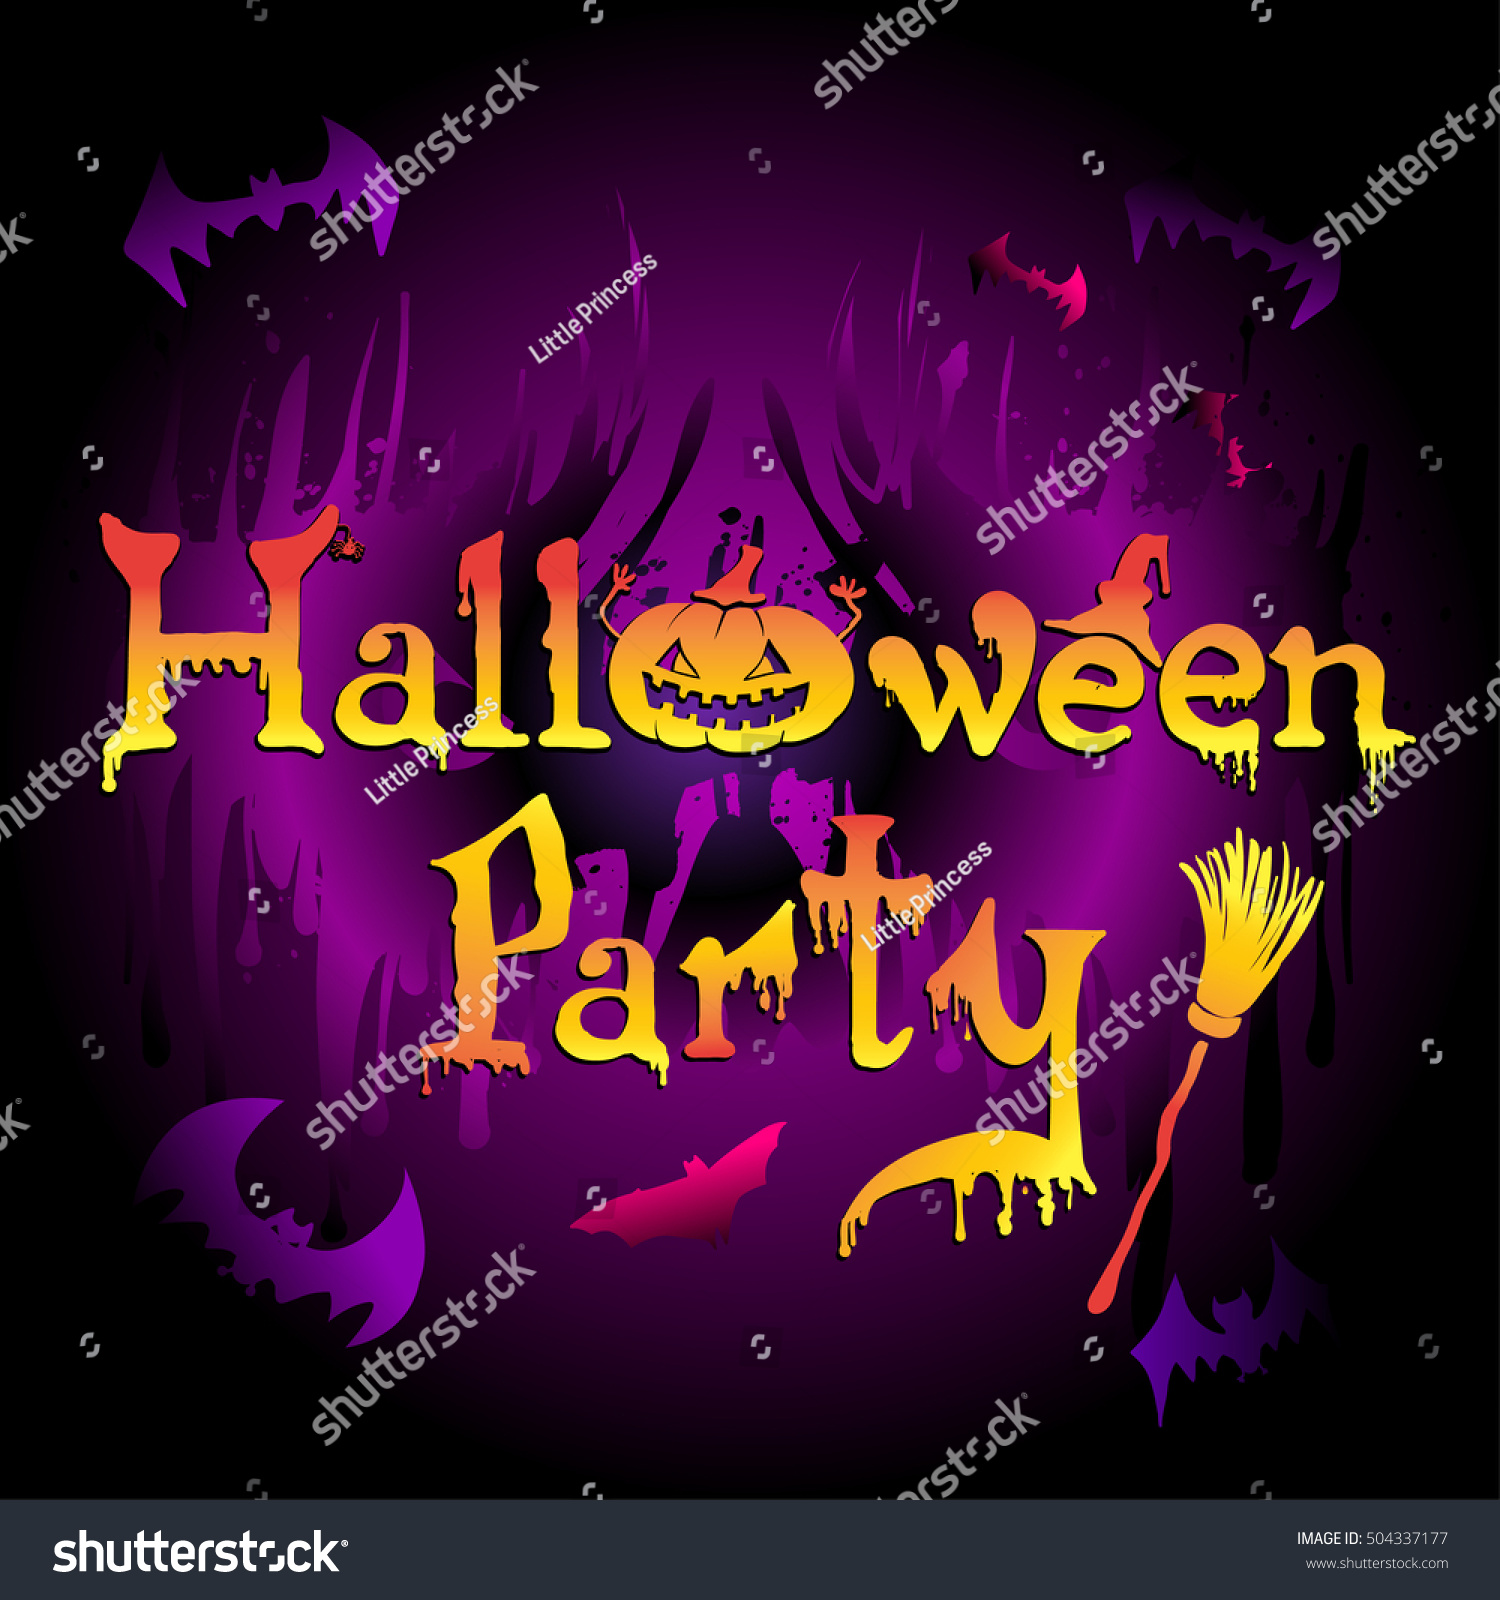 Most Inspiring Wallpaper Halloween Neon - stock-vector-abstract-holiday-banner-with-happy-halloween-calligraphy-background-in-neon-colors-with-silhouette-504337177  Pic_97913.jpg